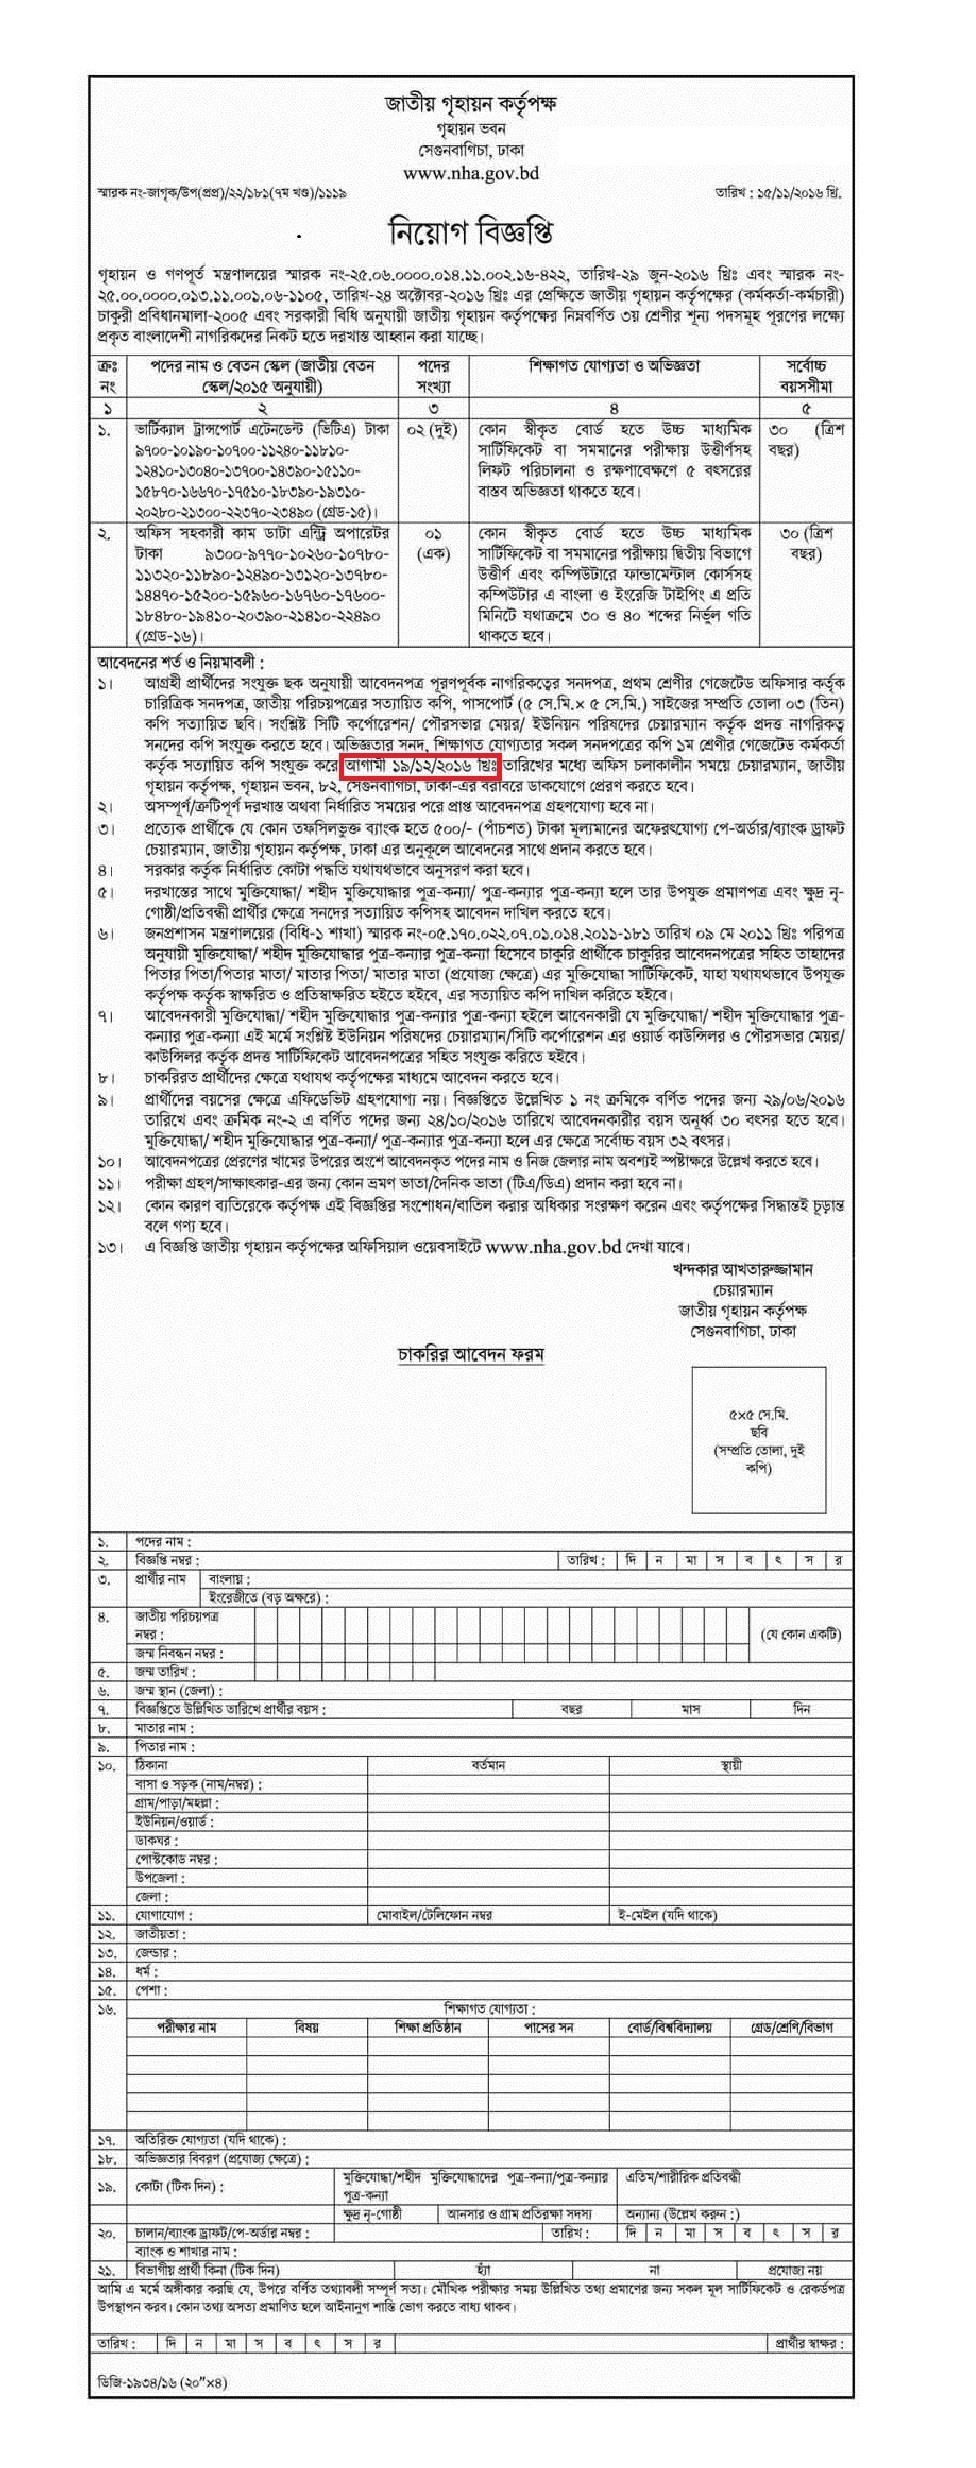 Bangladesh National Housing Authority Job Circular